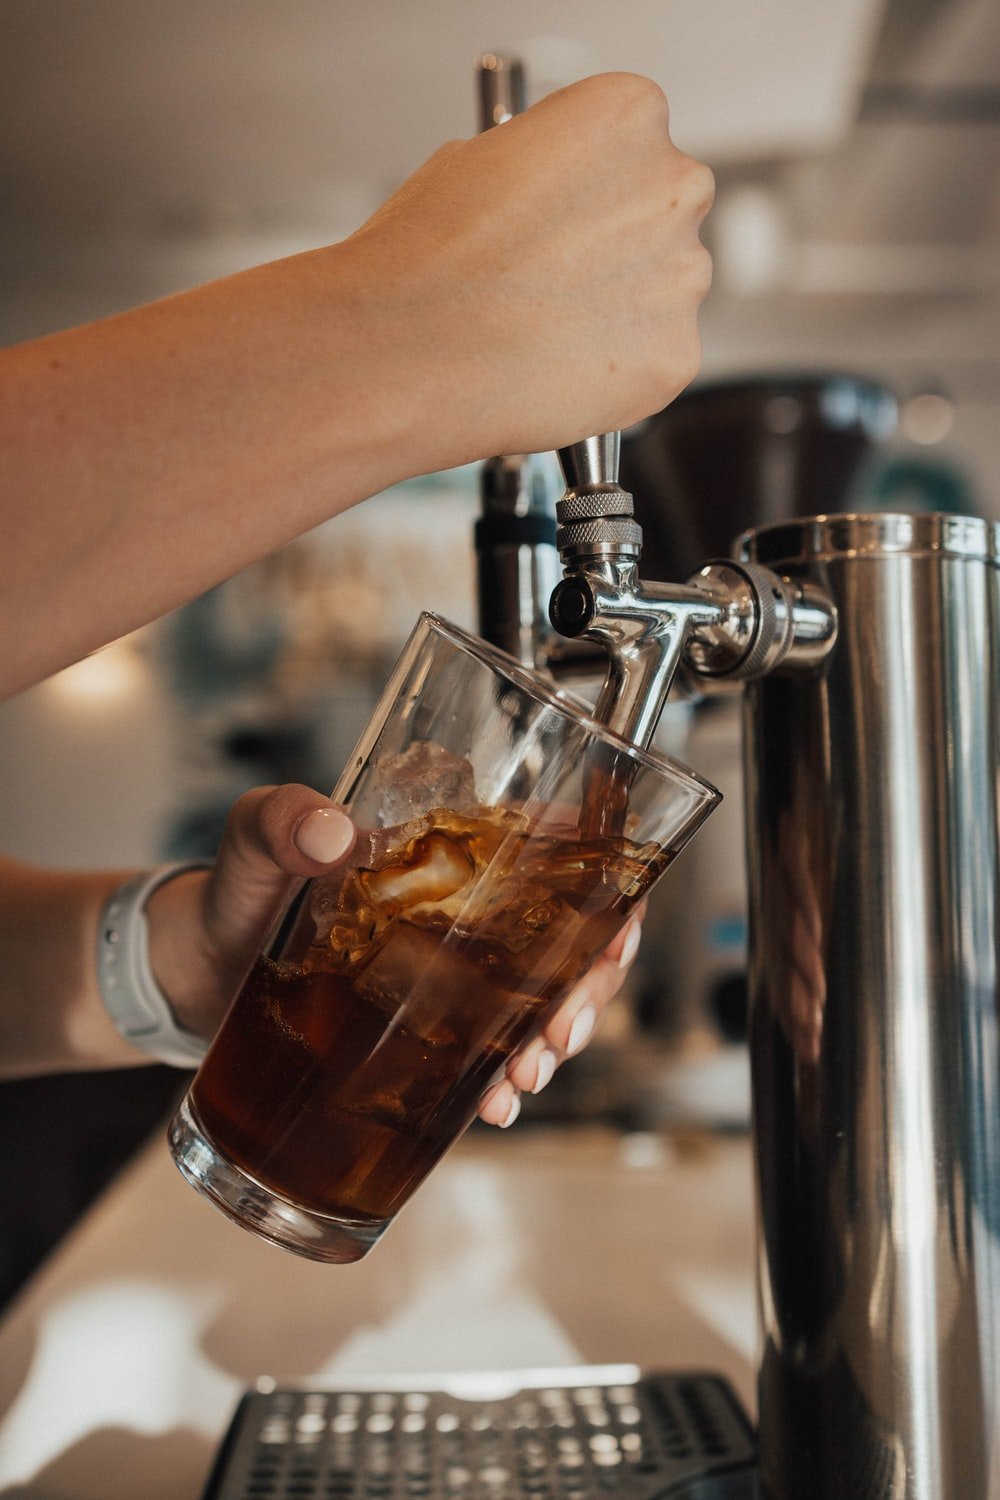 person pouring beverage in clear drinking glass from dispenser